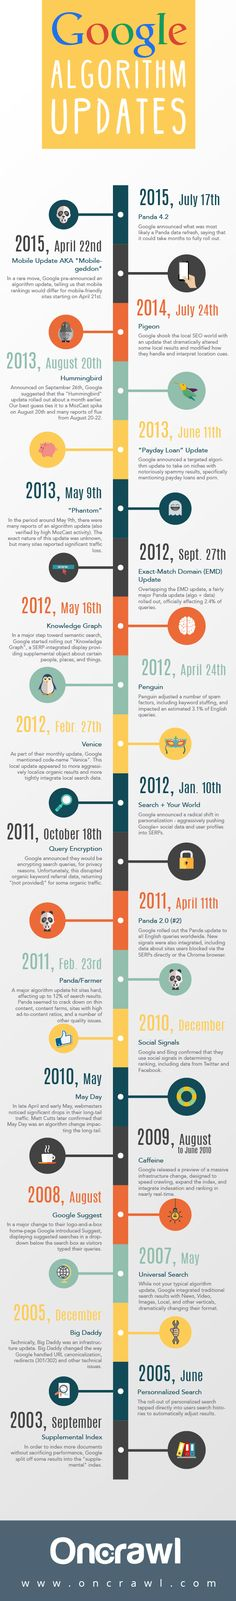 2003-2015: 12 years Google Algorithm Updates